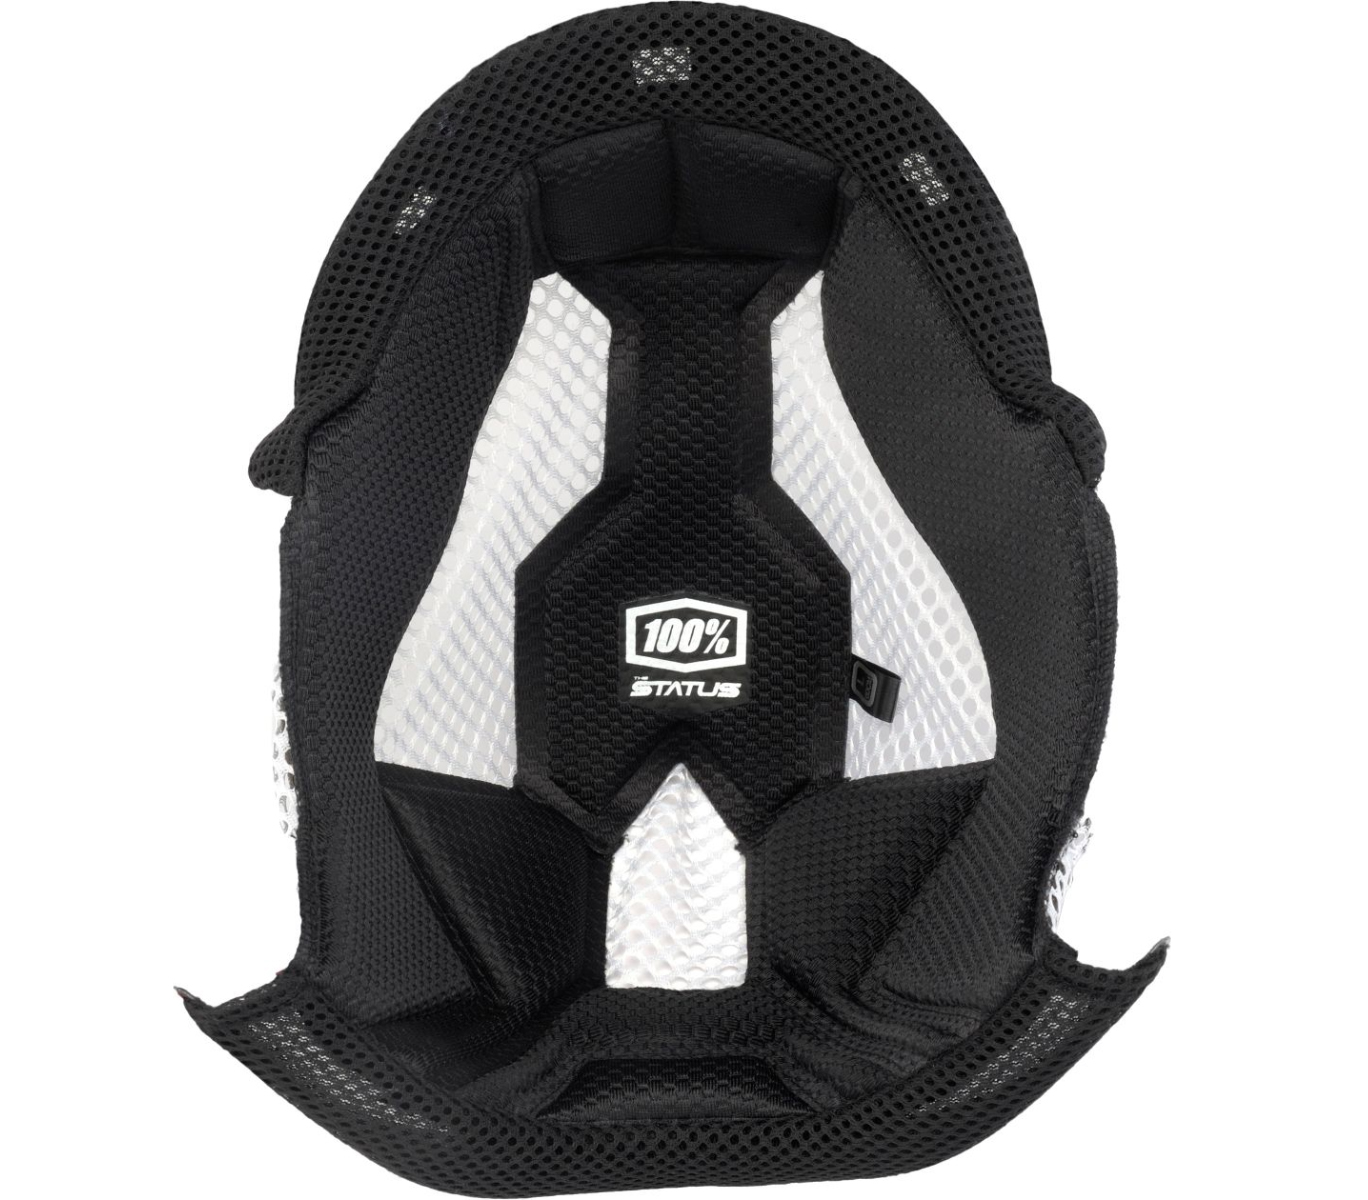 100% - Status | bike helmet accessory